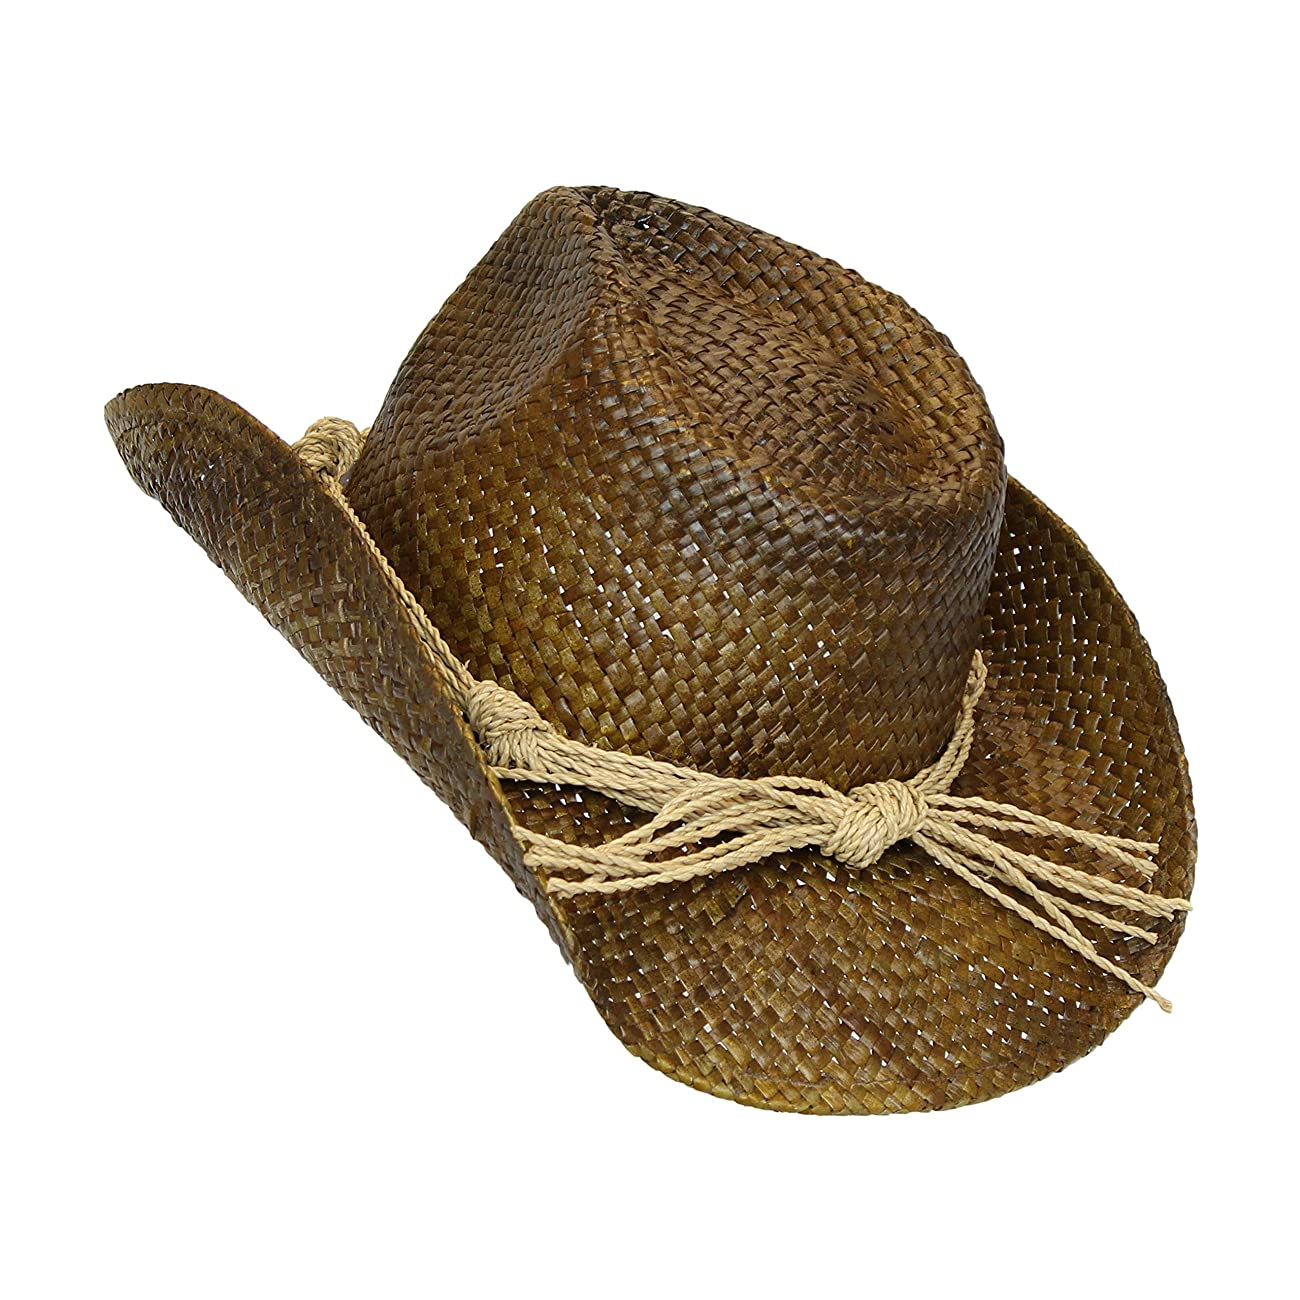 Western Seagrass Straw Cowboy Hat – Cute Vintage Cowgirl Hat w/ Flower 4